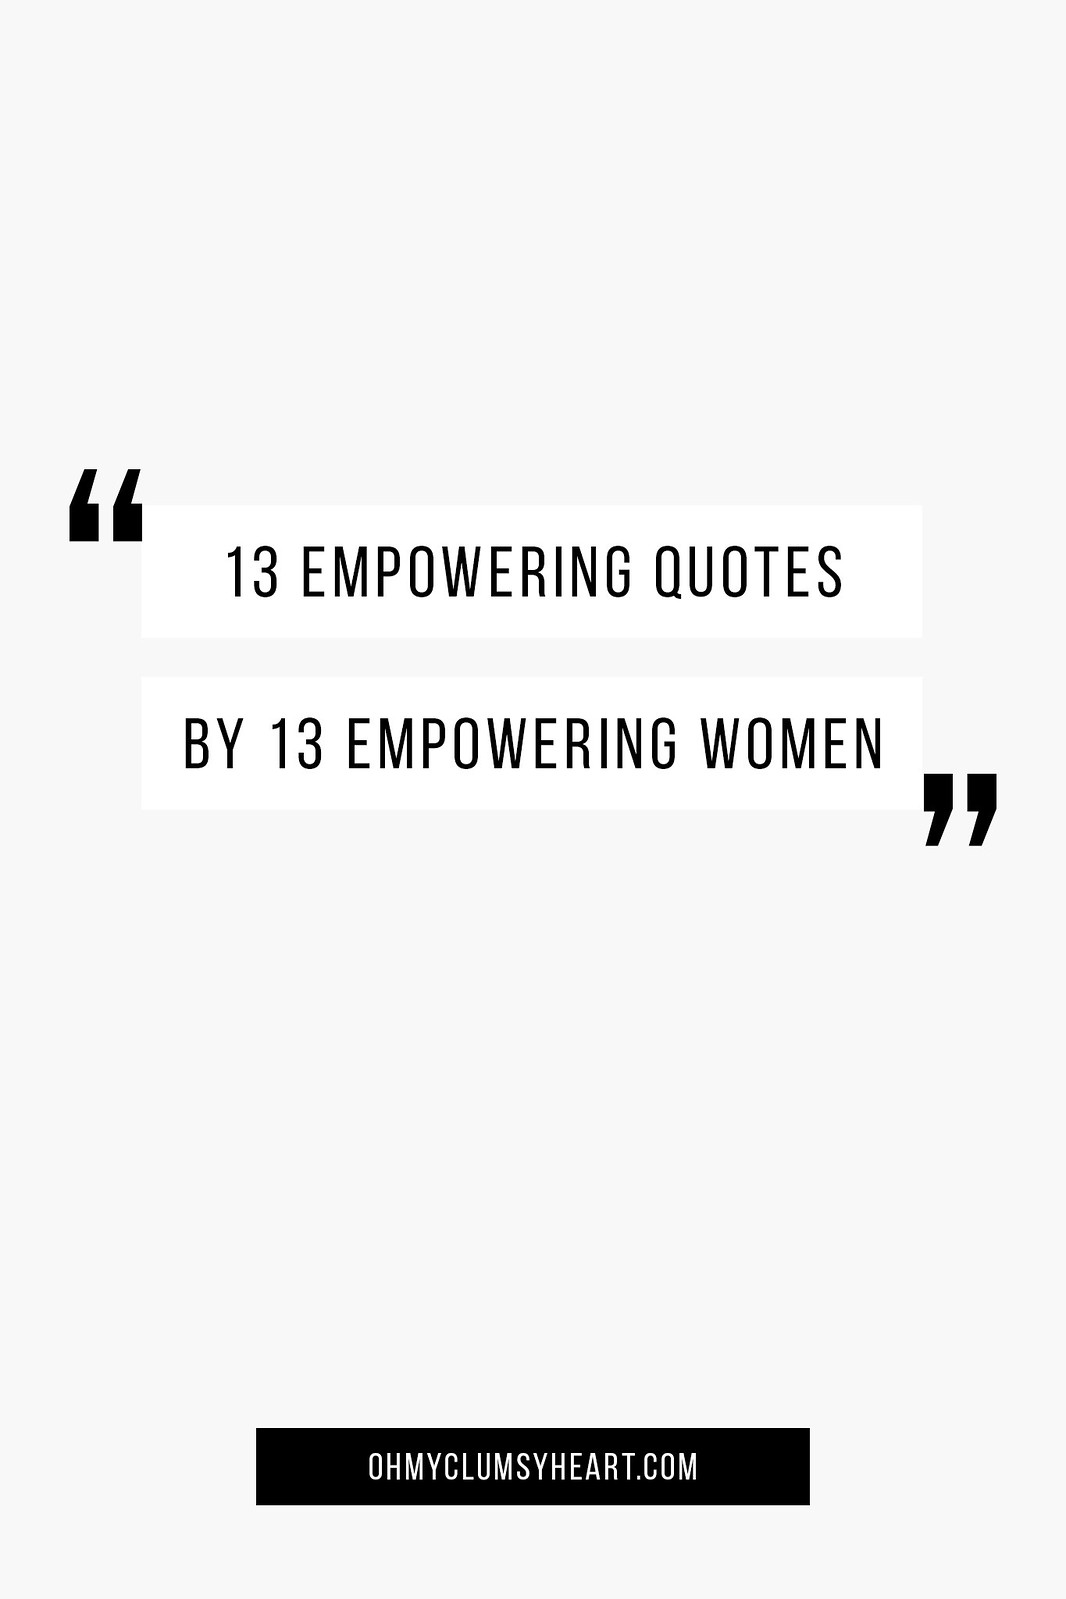 13 Empowering Quotes By 13 Empowering Women